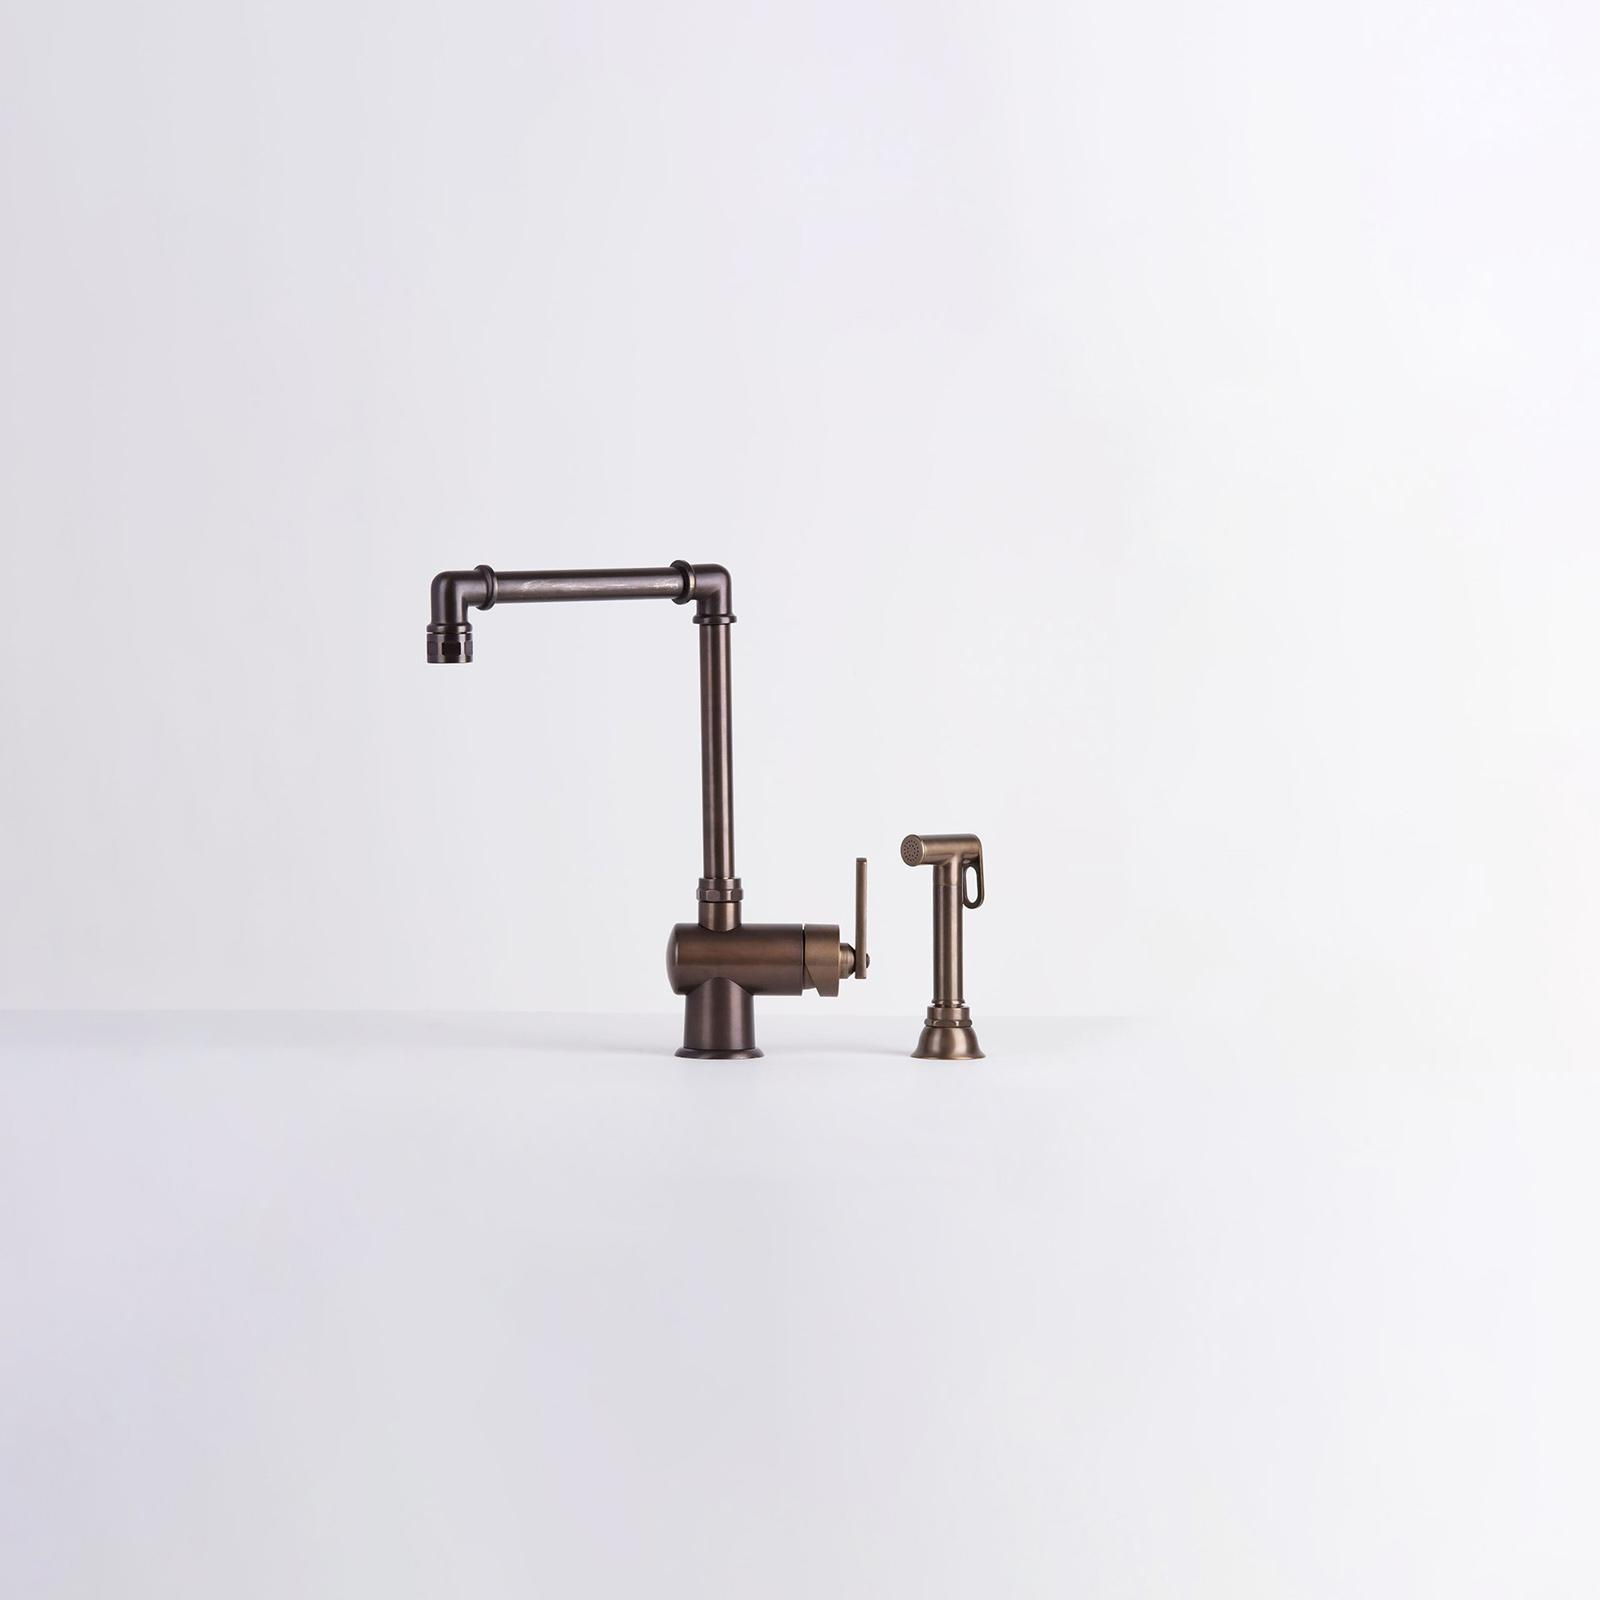 High-quality mixer tap Queen - rc948084